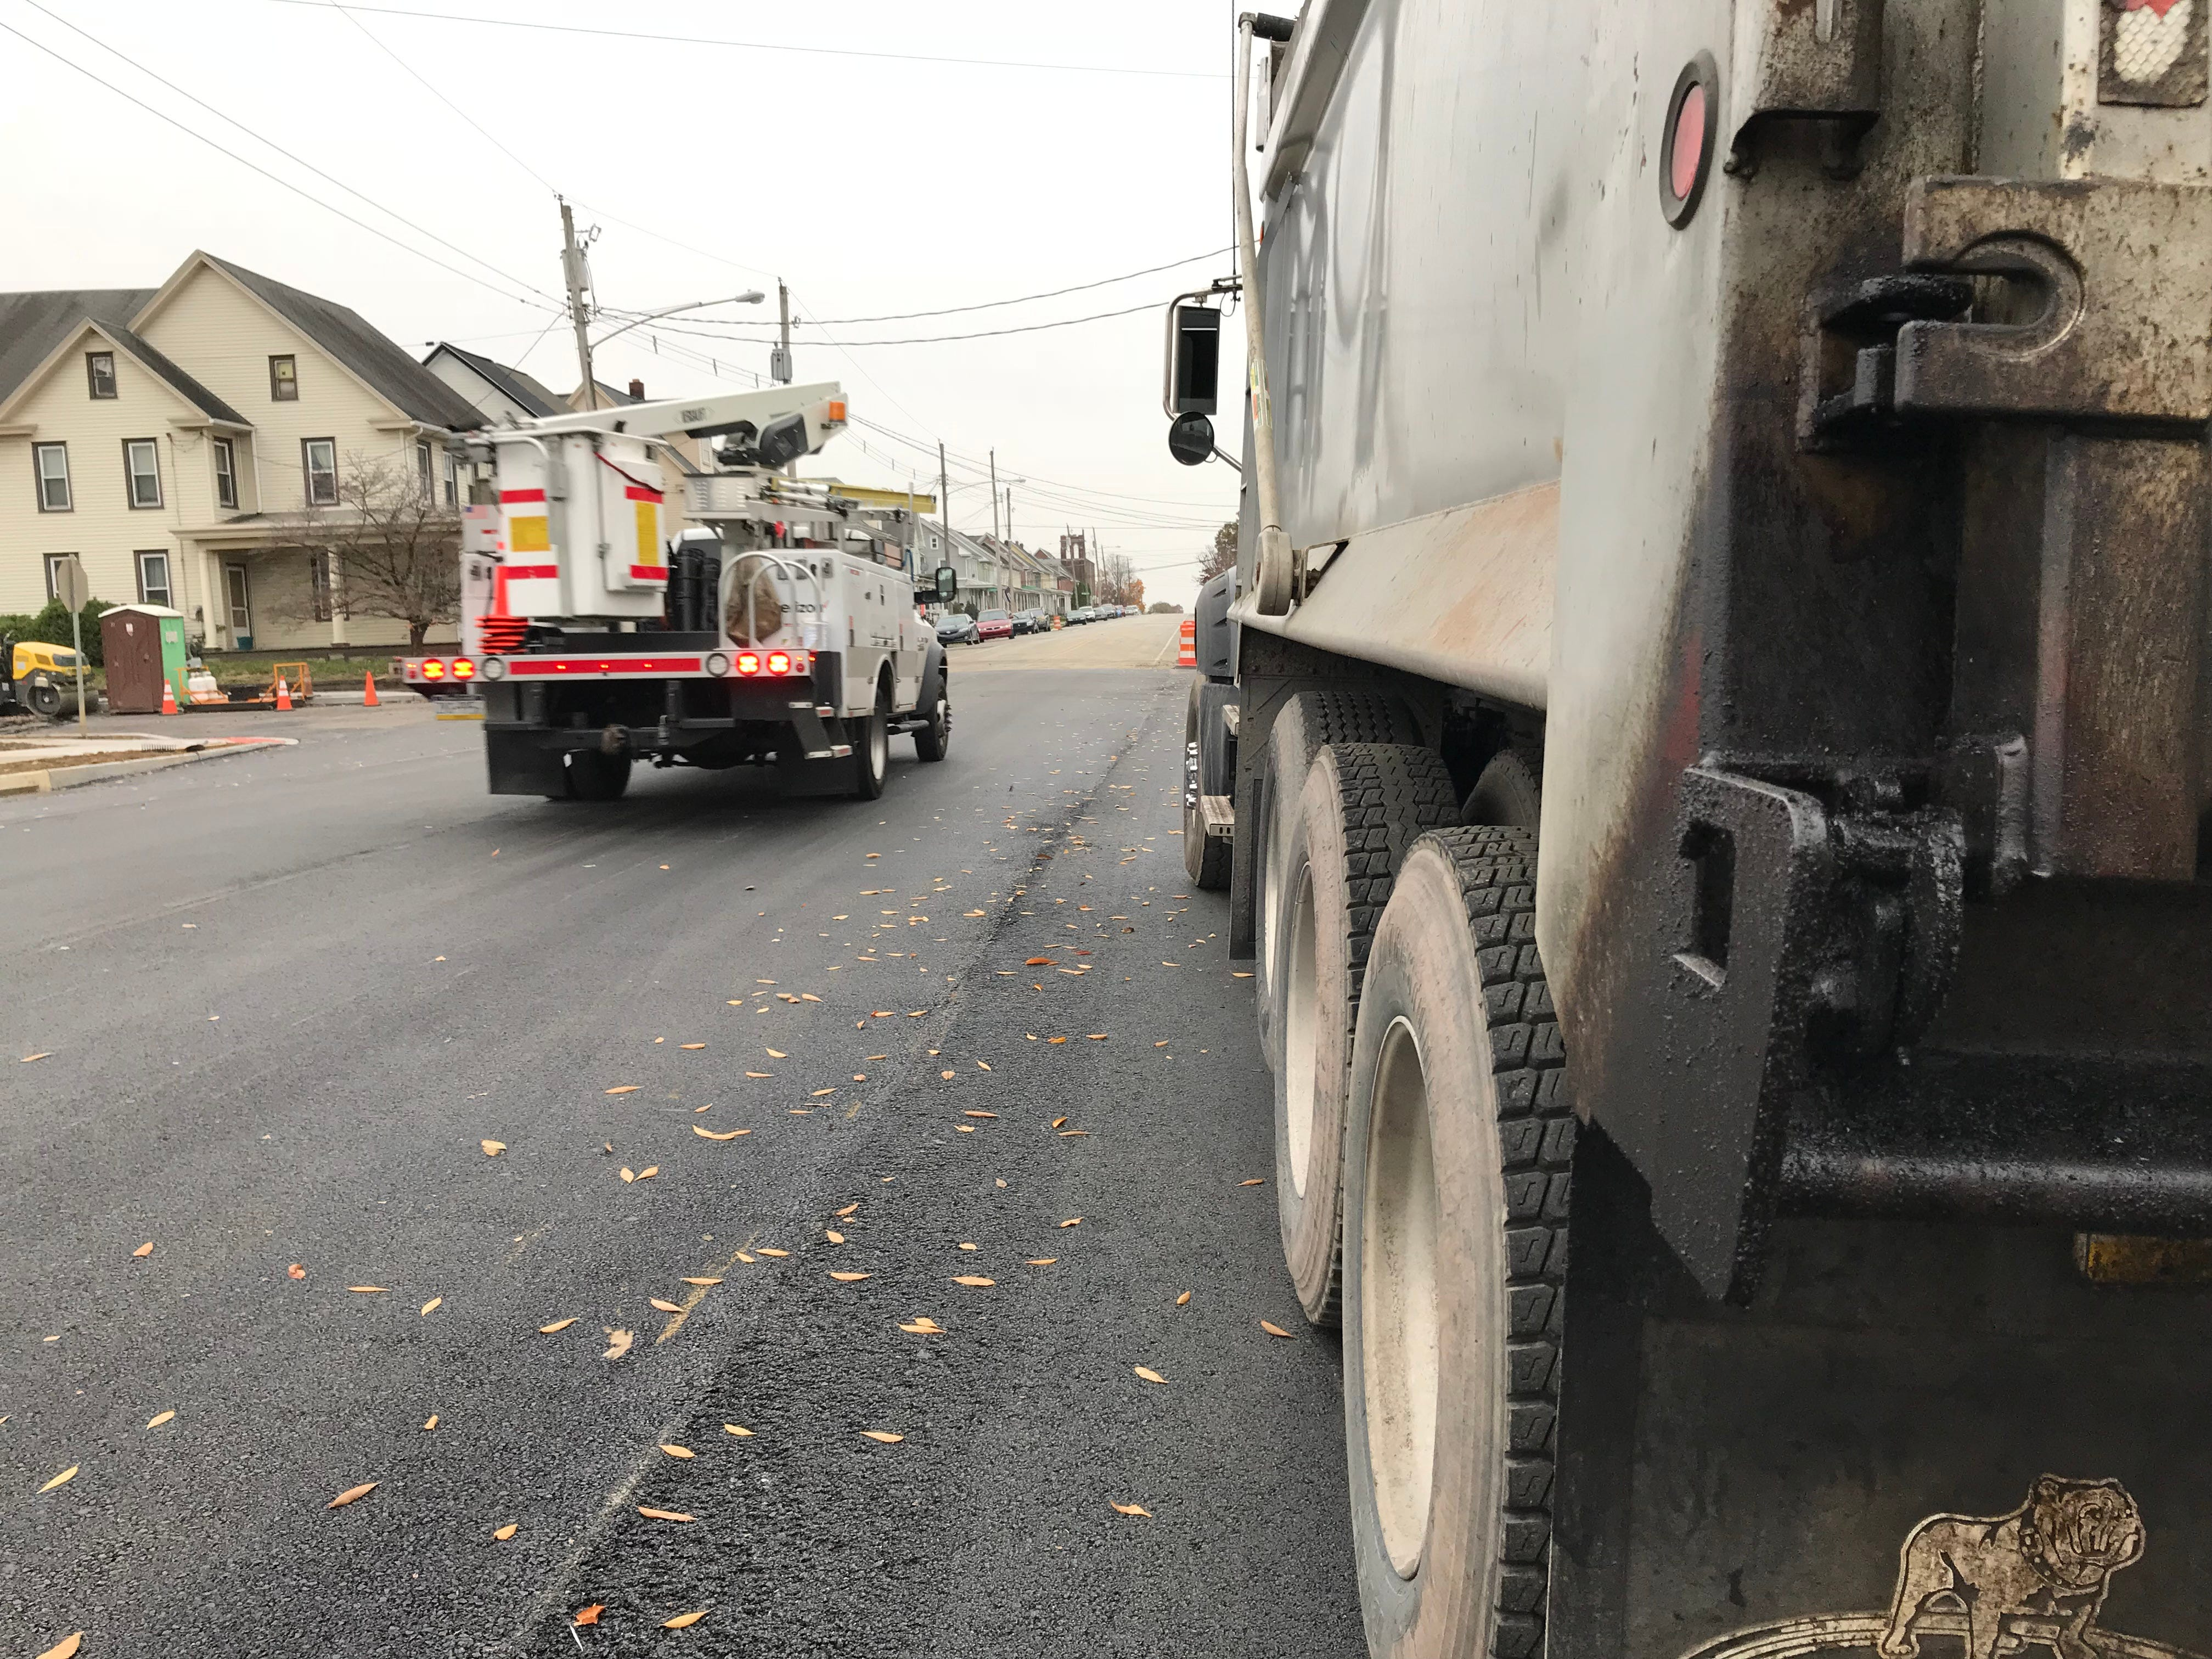 Cherry Street in Palmyra Borough in the area of Grant Street officially re-opened Nov. 9, 2018. The street was closed due to sinkhole damage since Oct. 2014.